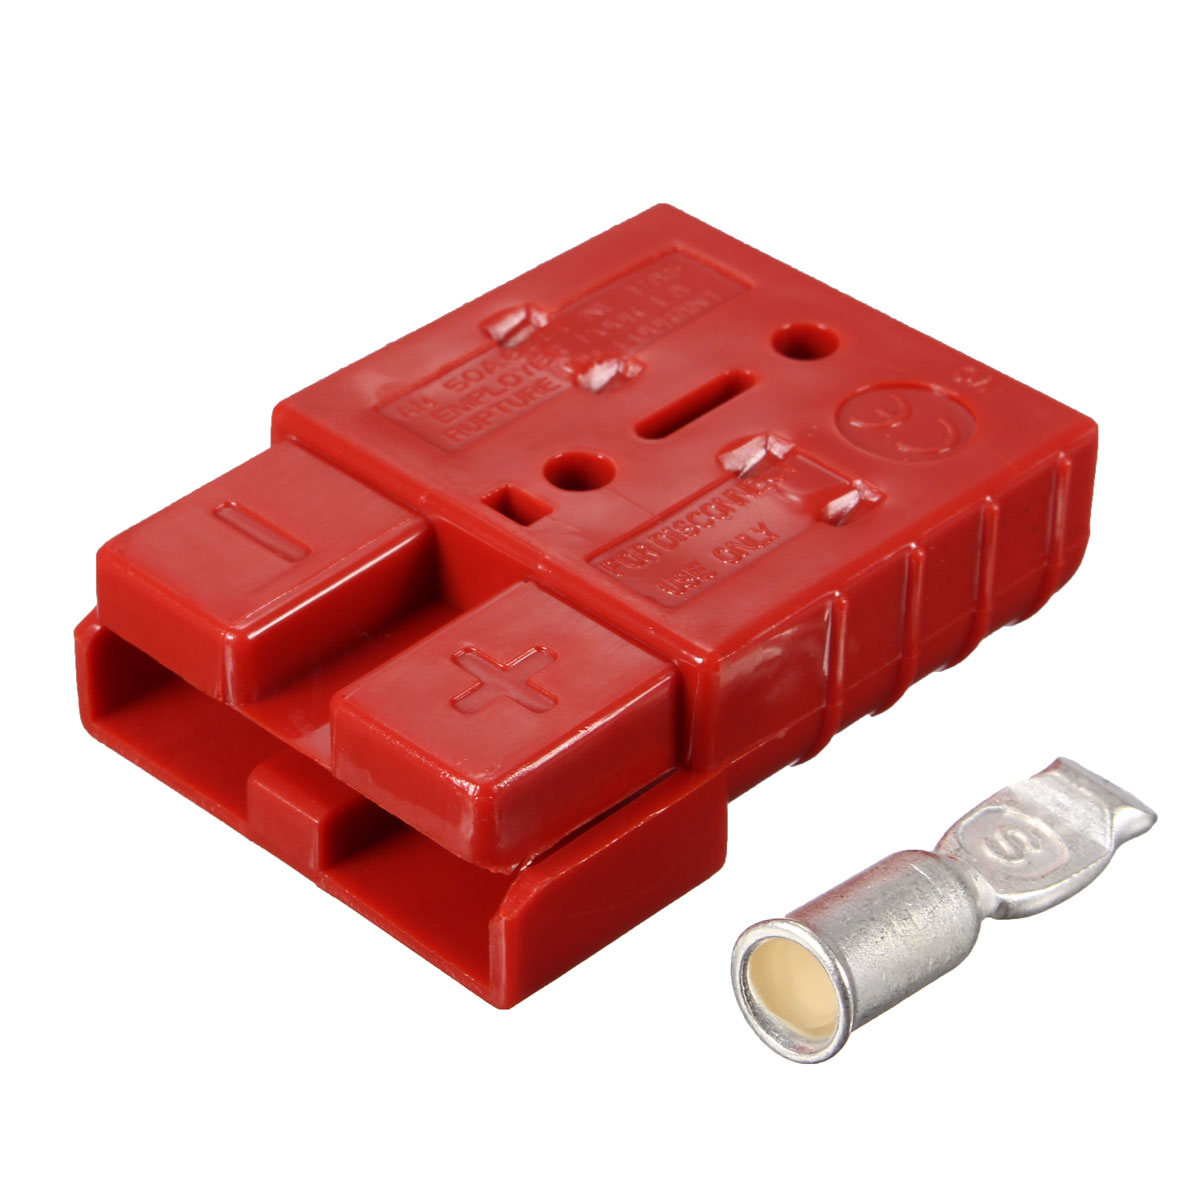 50A 8AWG Battery Quick Connector Plug Connect Disconnect Winch Trailer Red New Electric